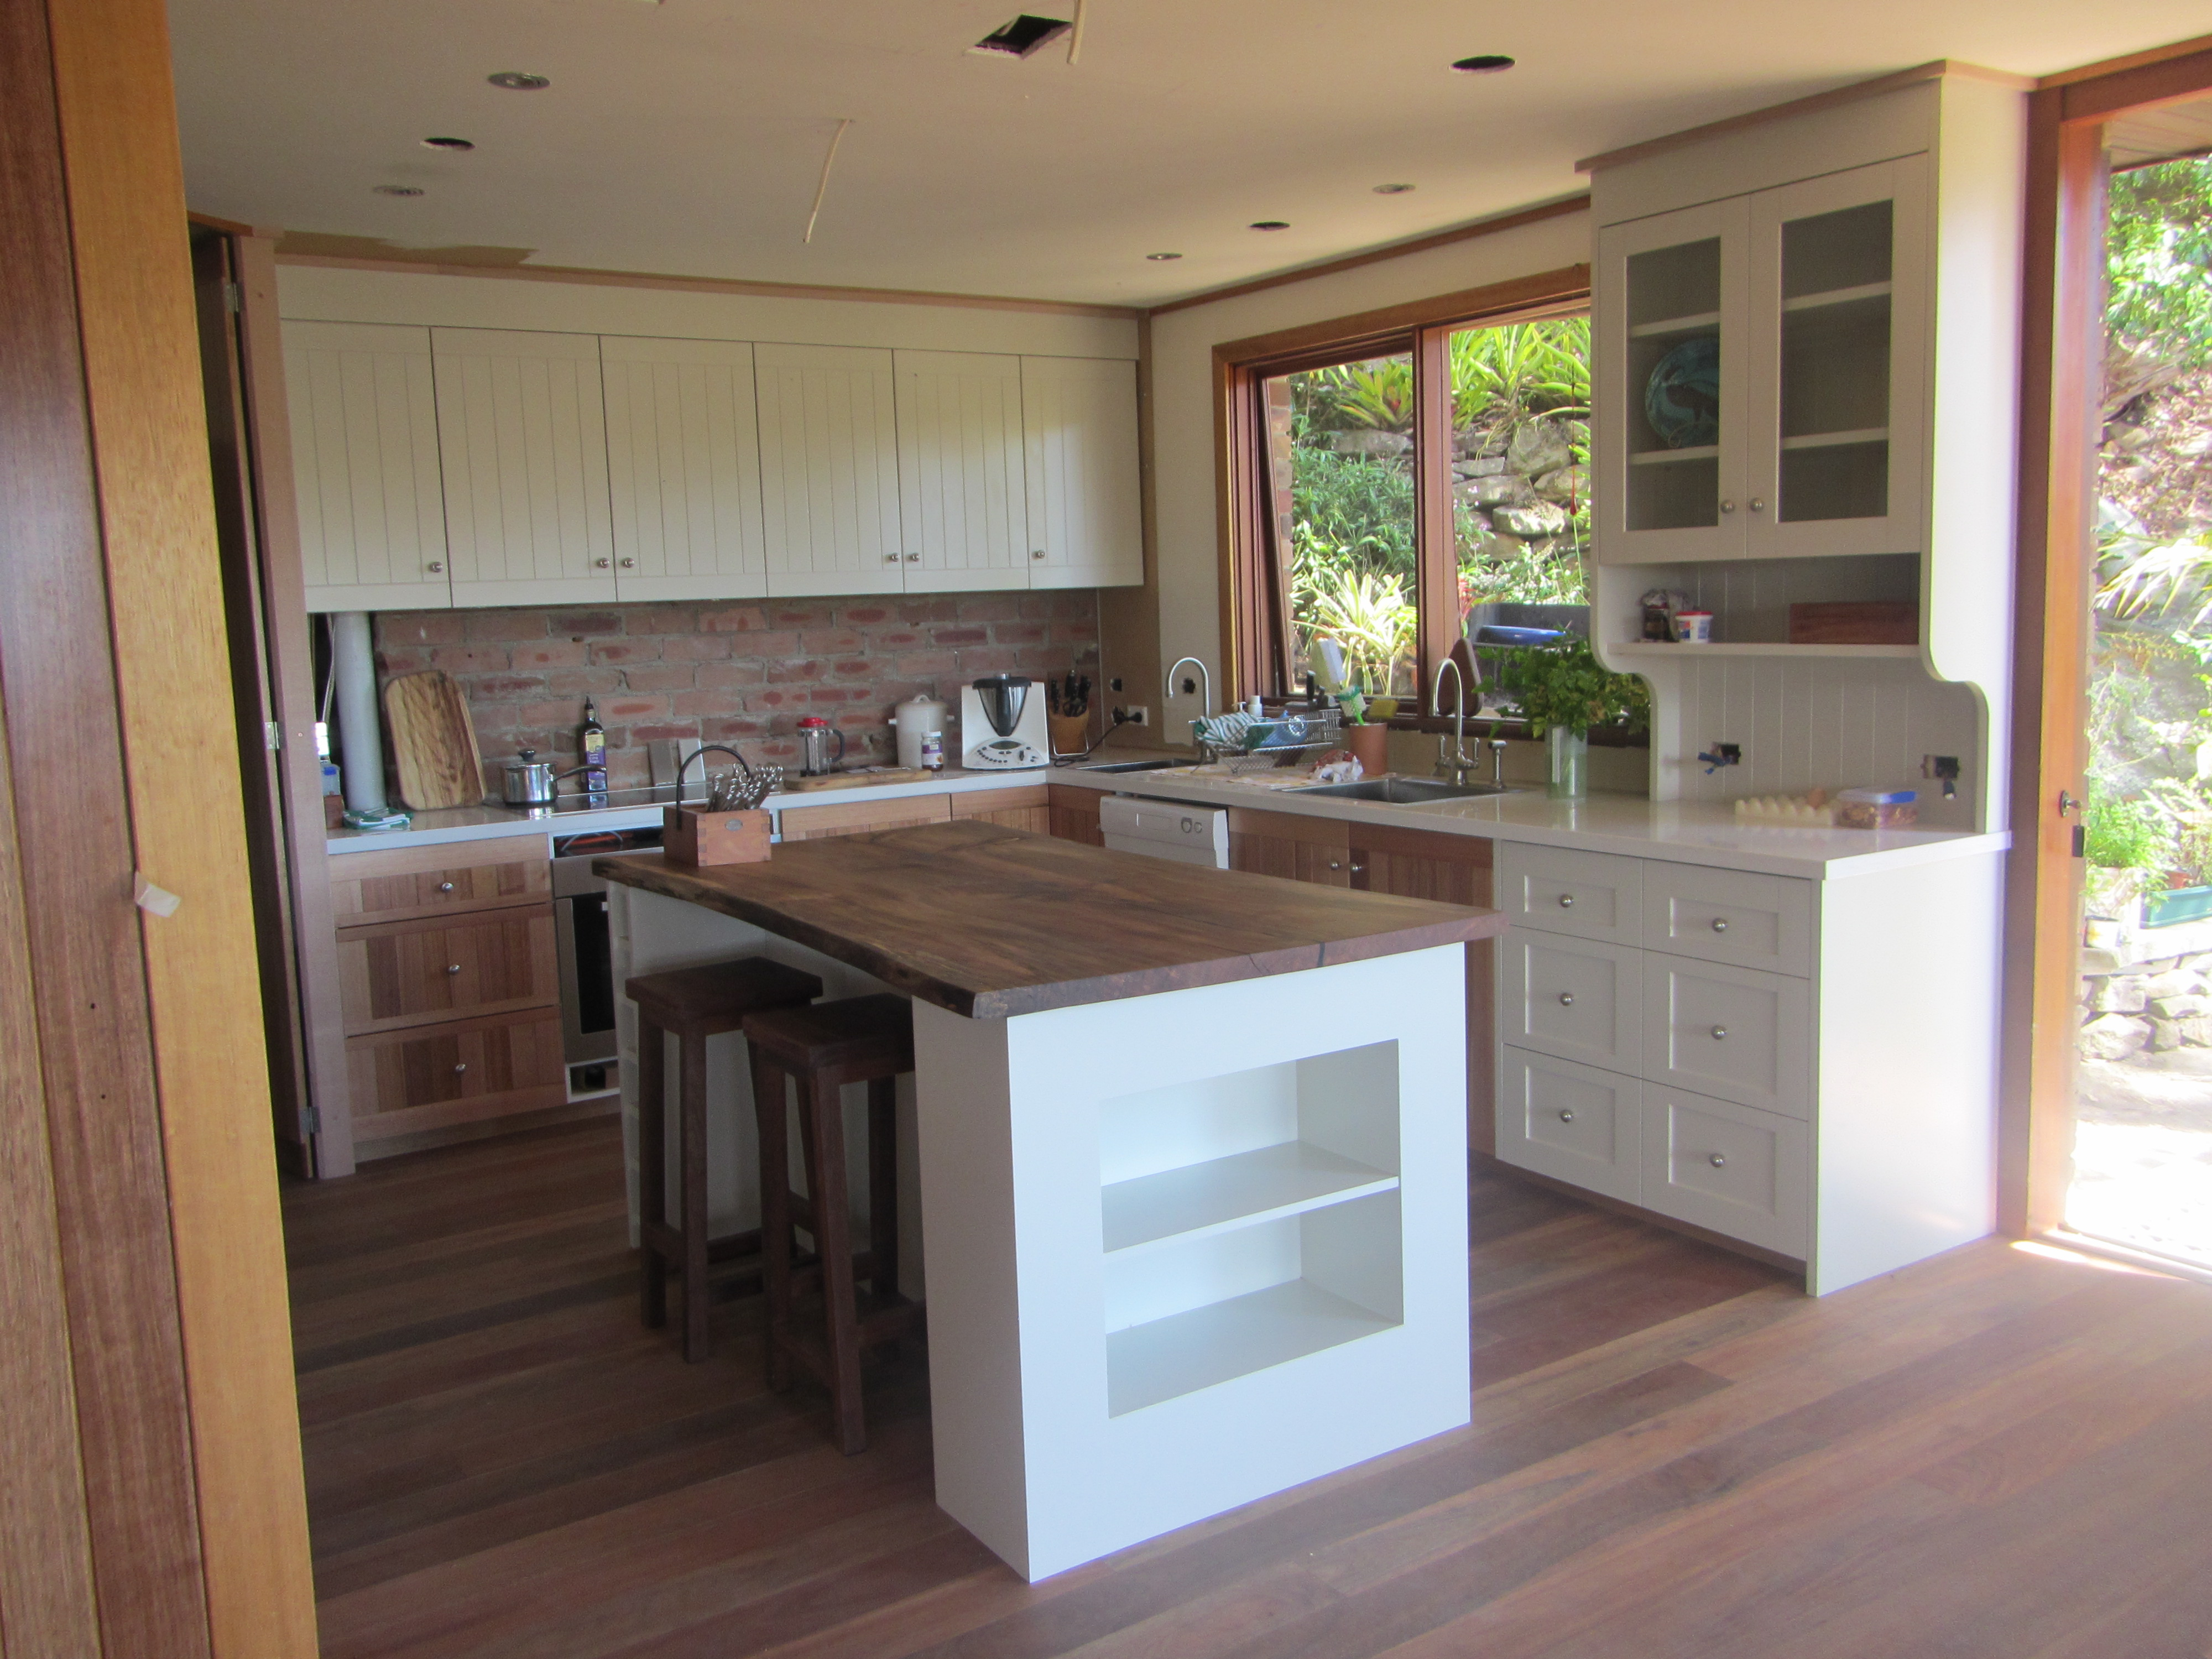 Marvelous photograph of How To Update Outdated Oak Kitchen Cabinets Good Questions Oak Kitchen  with #8A7941 color and 4000x3000 pixels